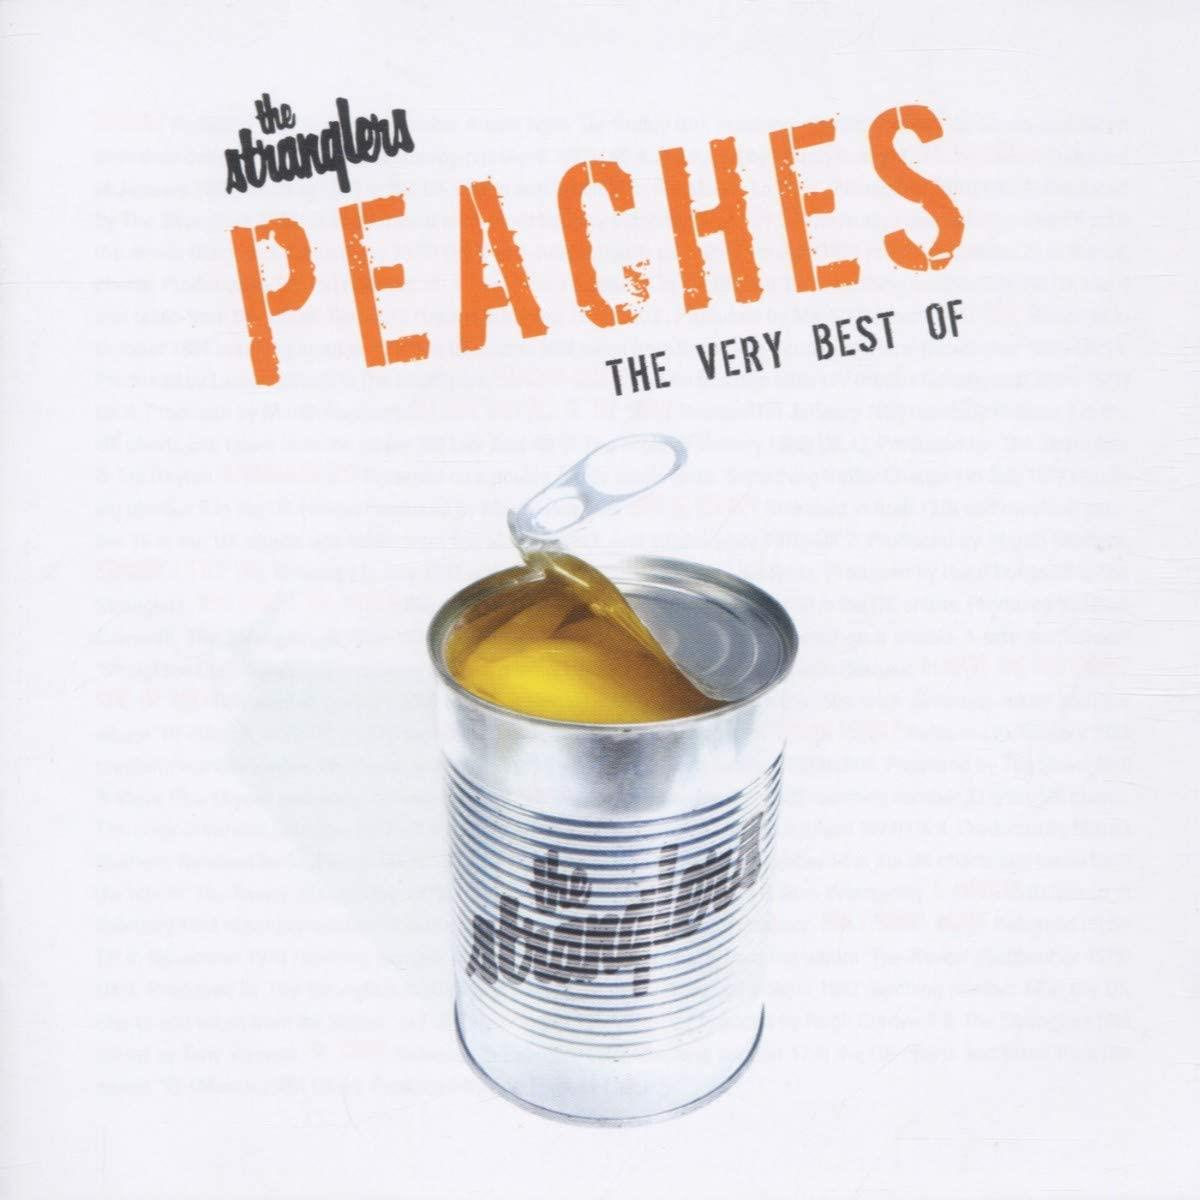 The Stranglers - Peaches: The Very Best of the Stranglers [2xLP]